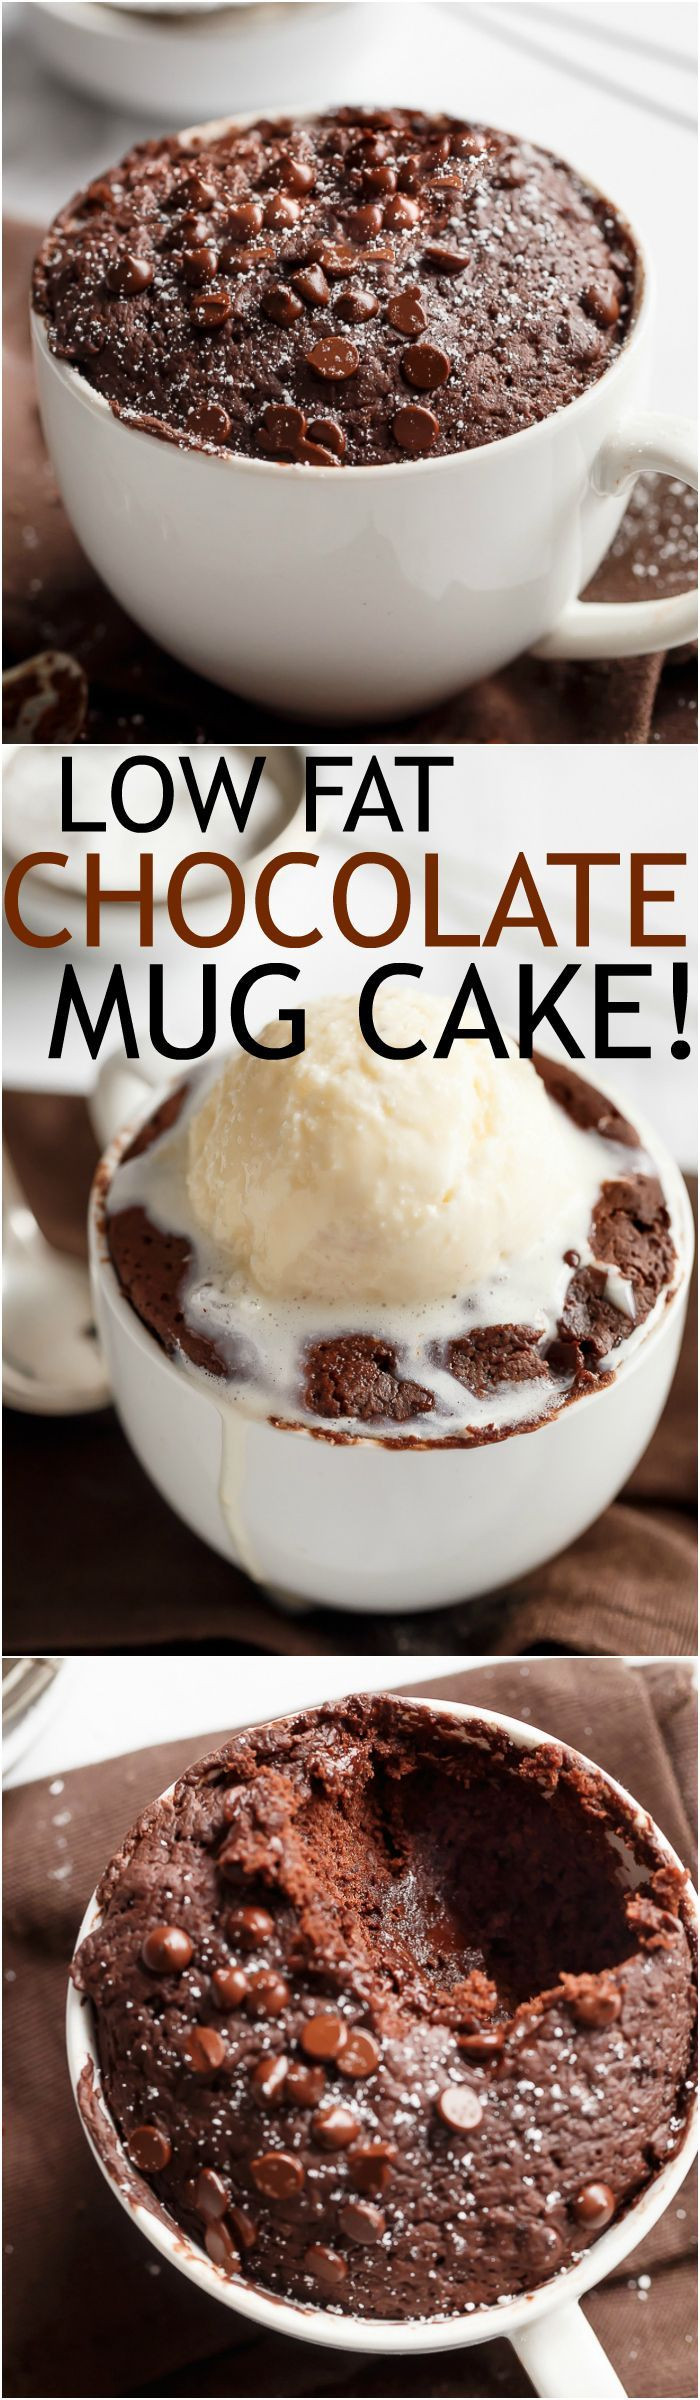 Low Fat Chocolate Desserts  best Sweet Desserts Recipes images on Pinterest